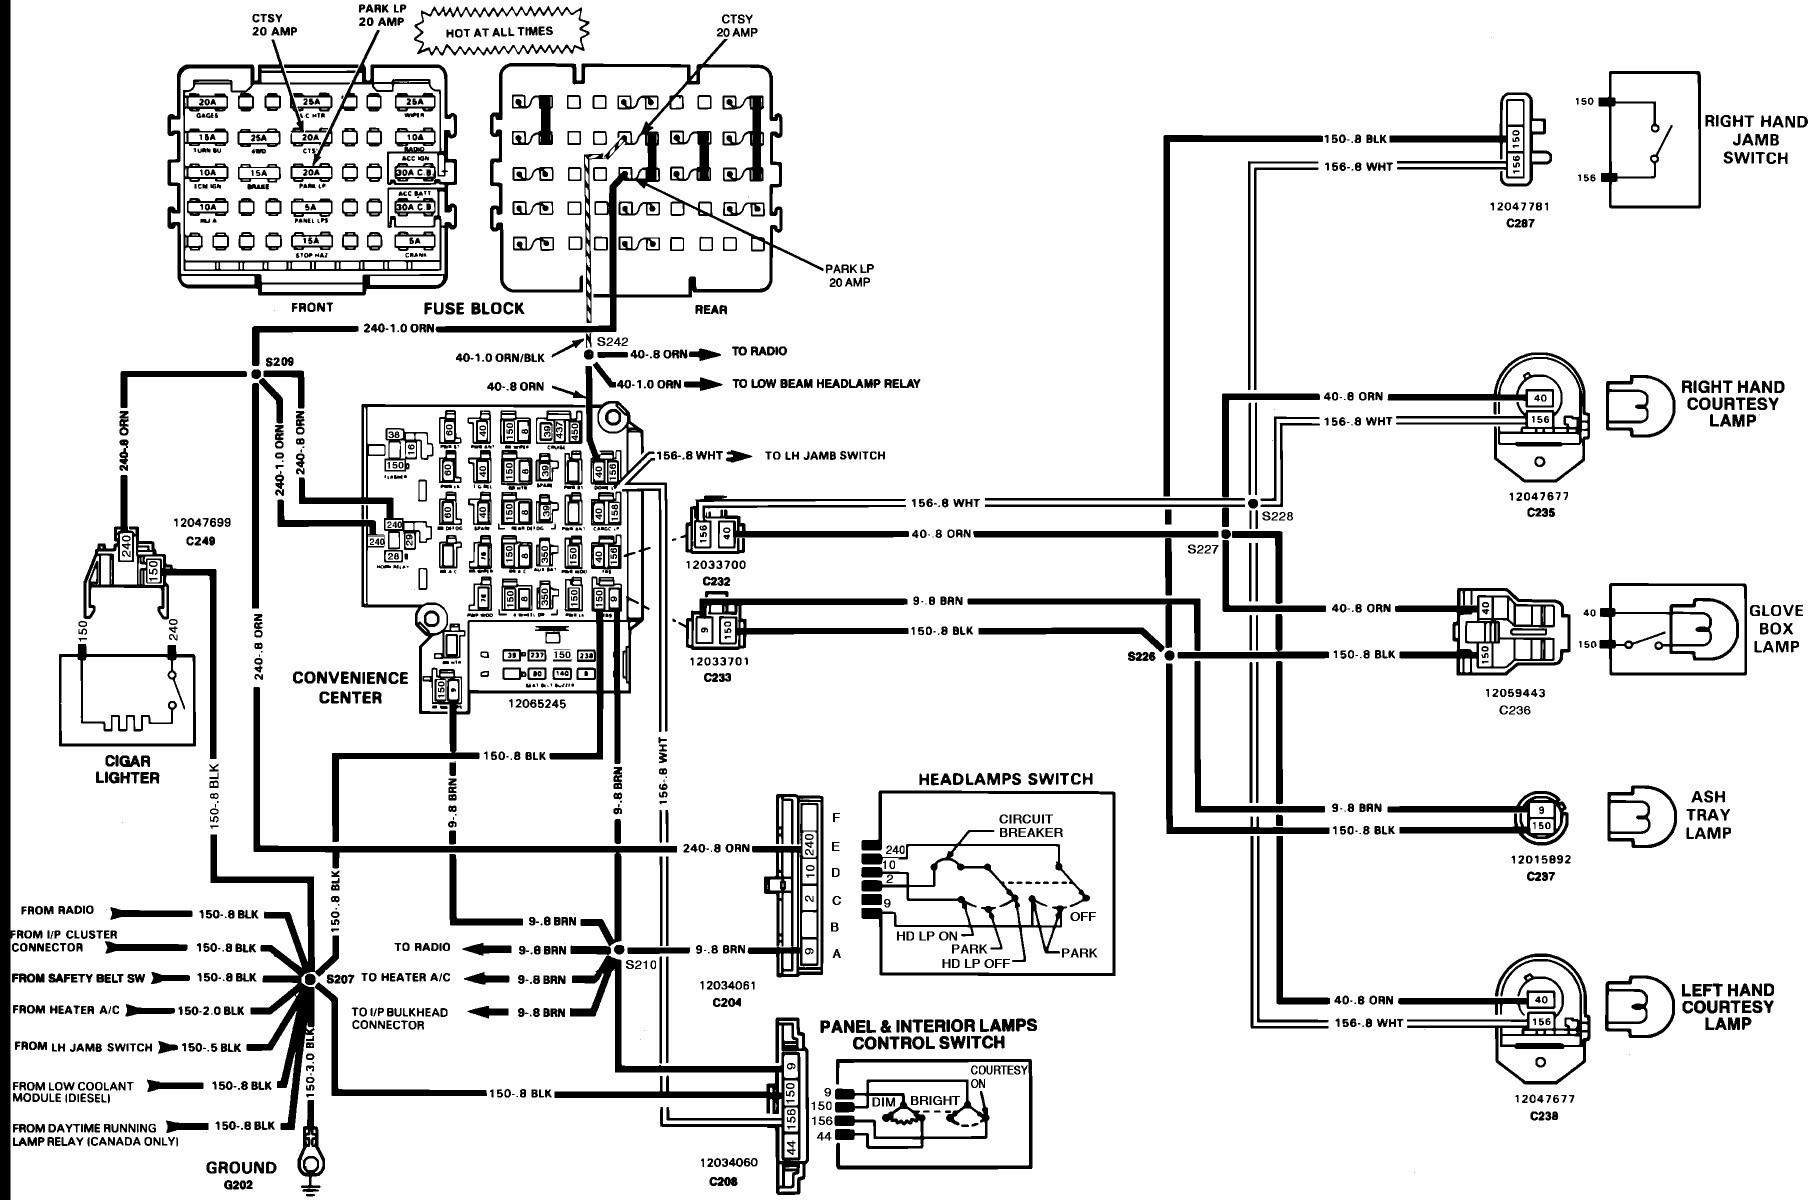 Wiring Diagram Nissan Maxima 1995 Free Download Wiring Diagrams